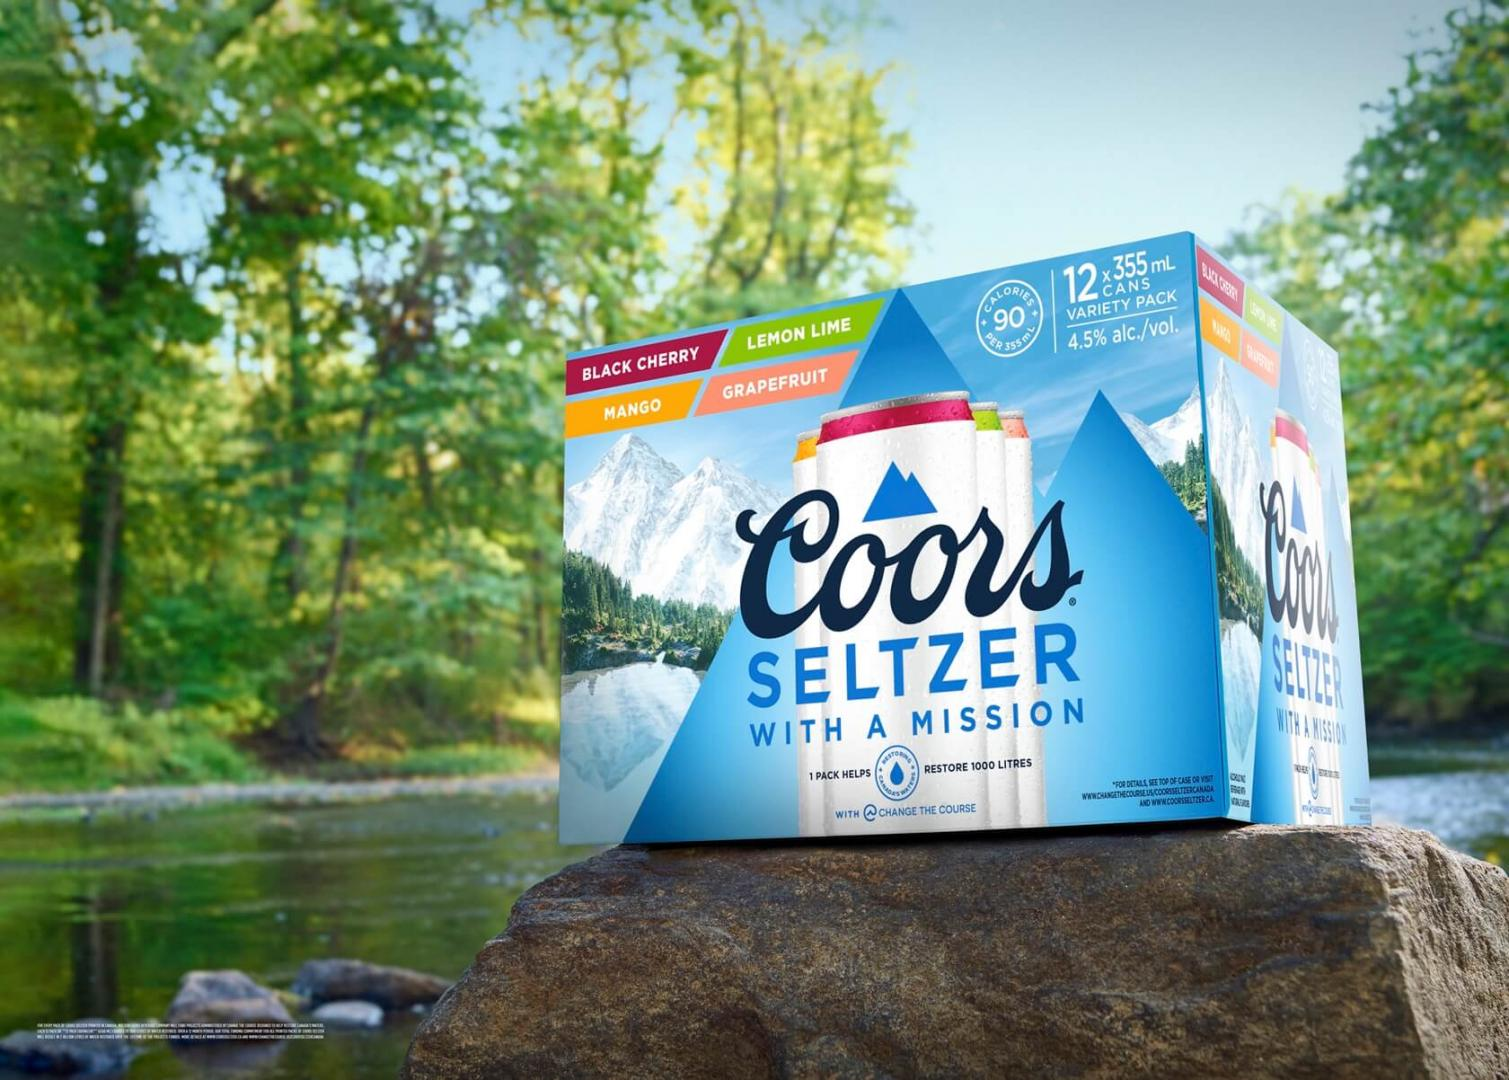 Coors Seltzer with a mission